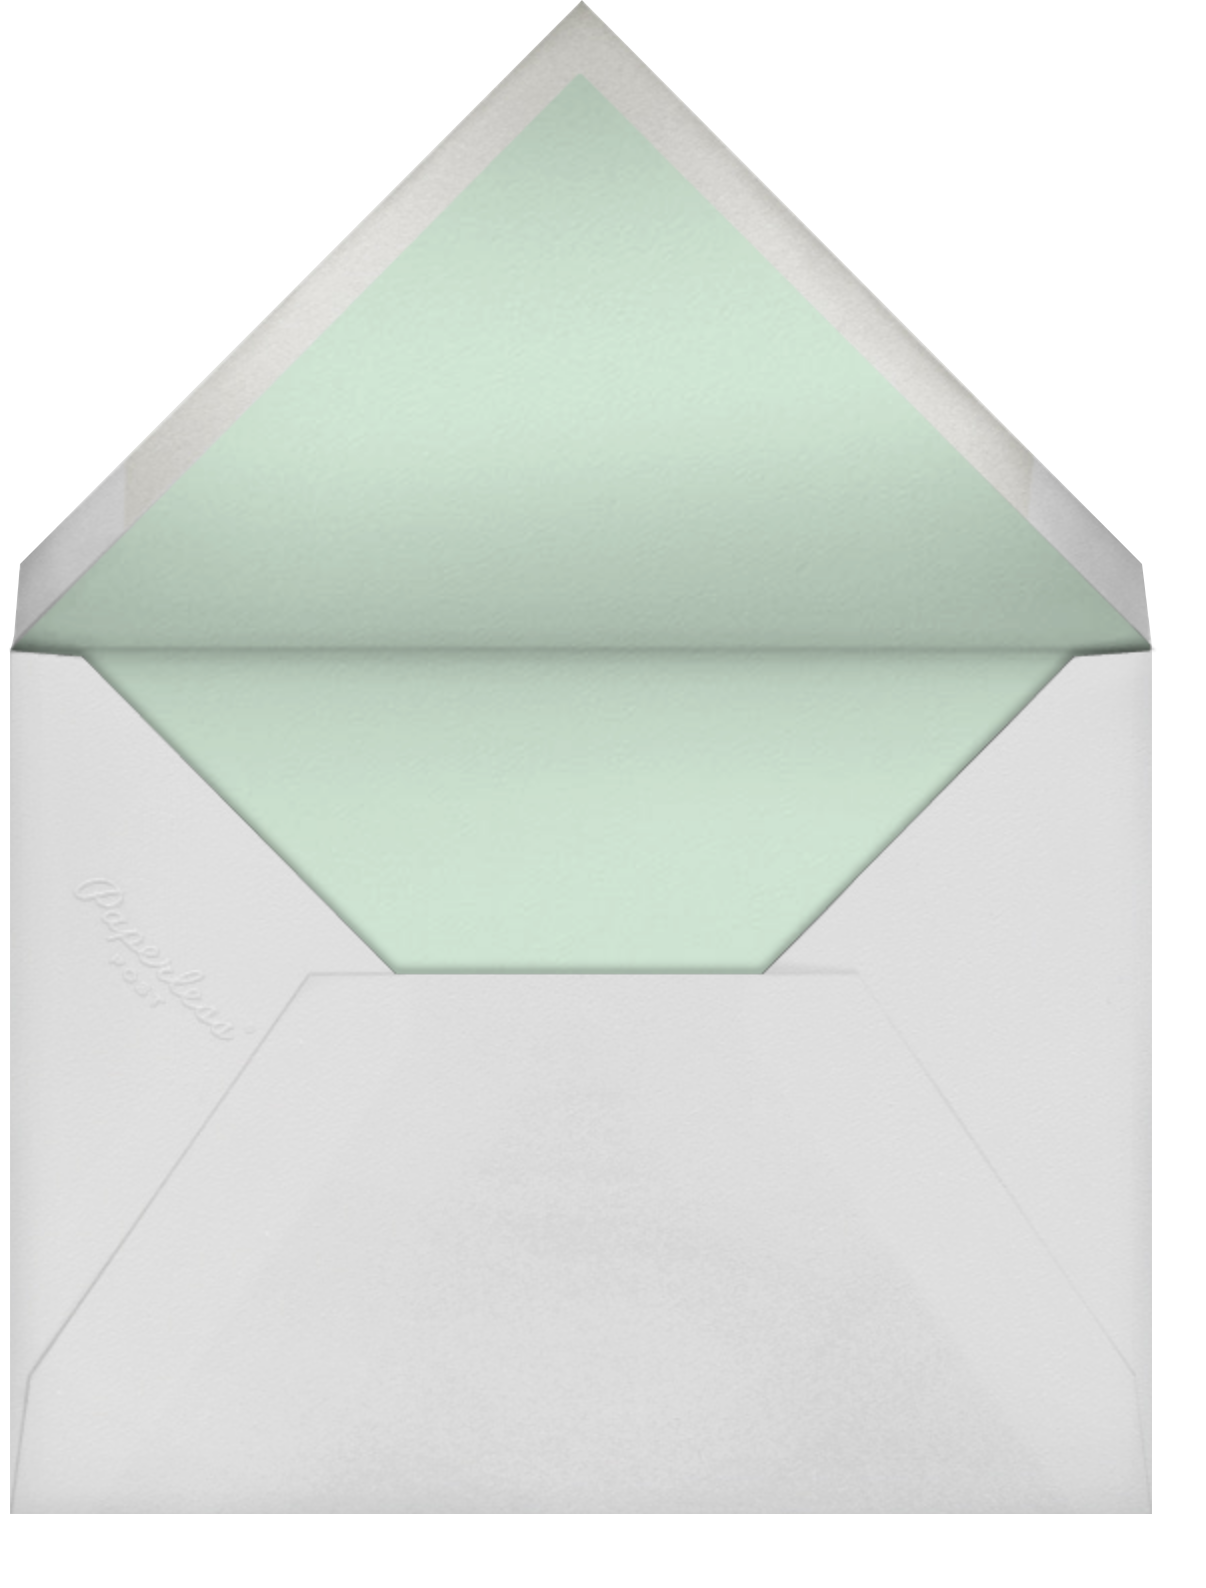 Leaves of Peace (Tall) - Paperless Post - Envelope